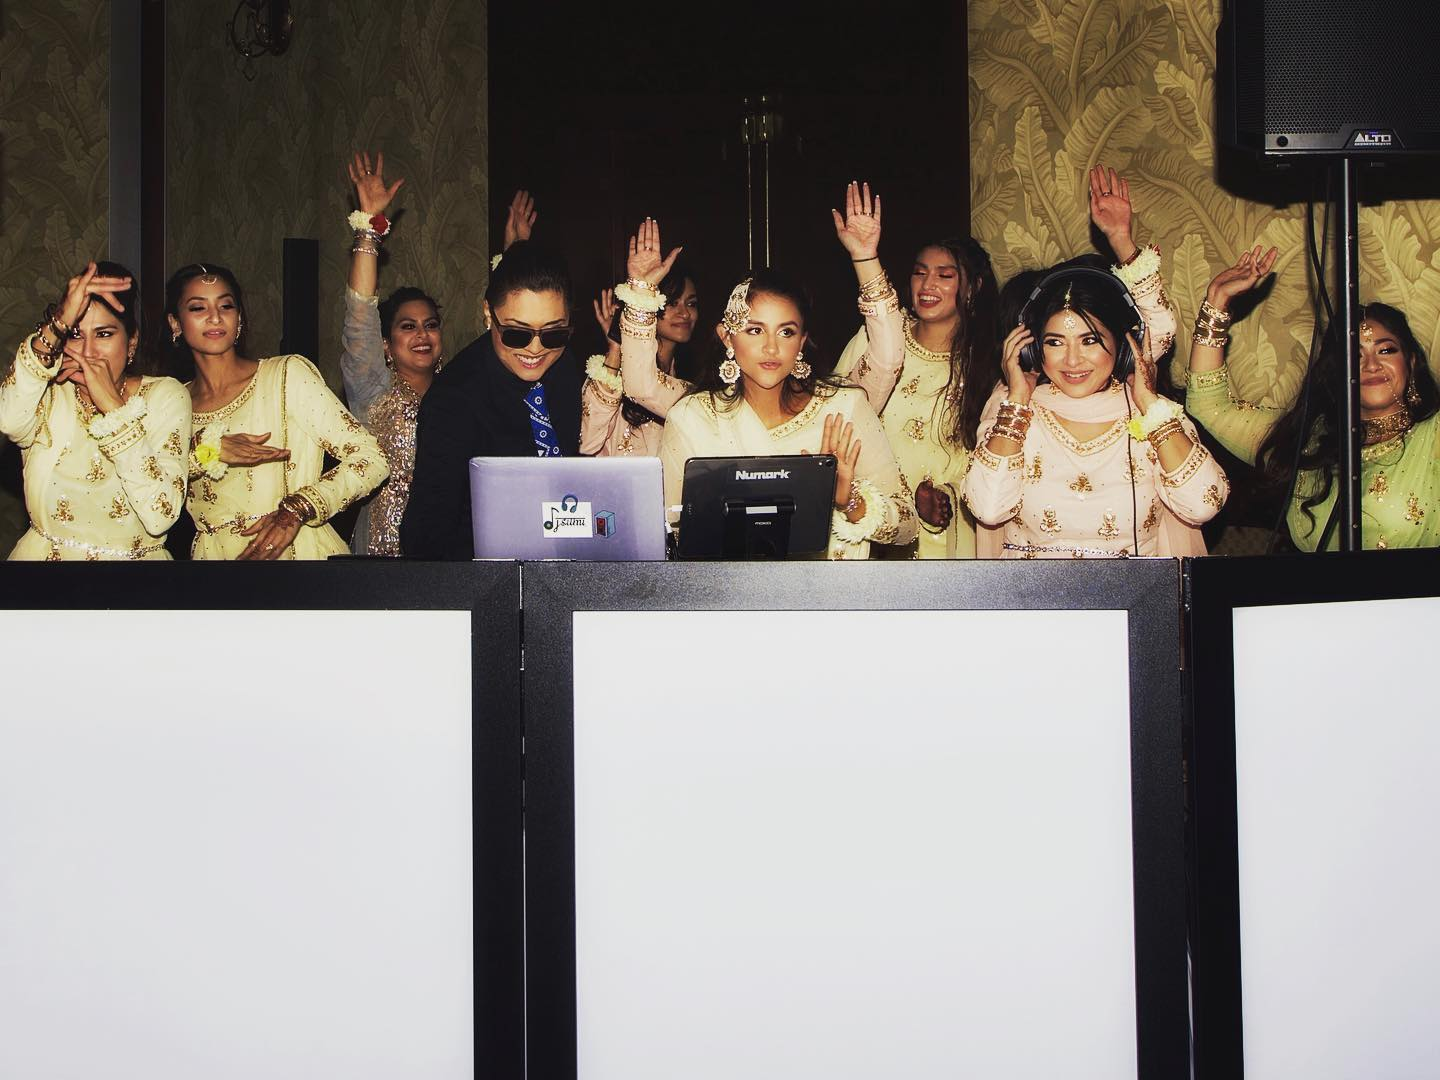 Dj sumi and bridesmaids!